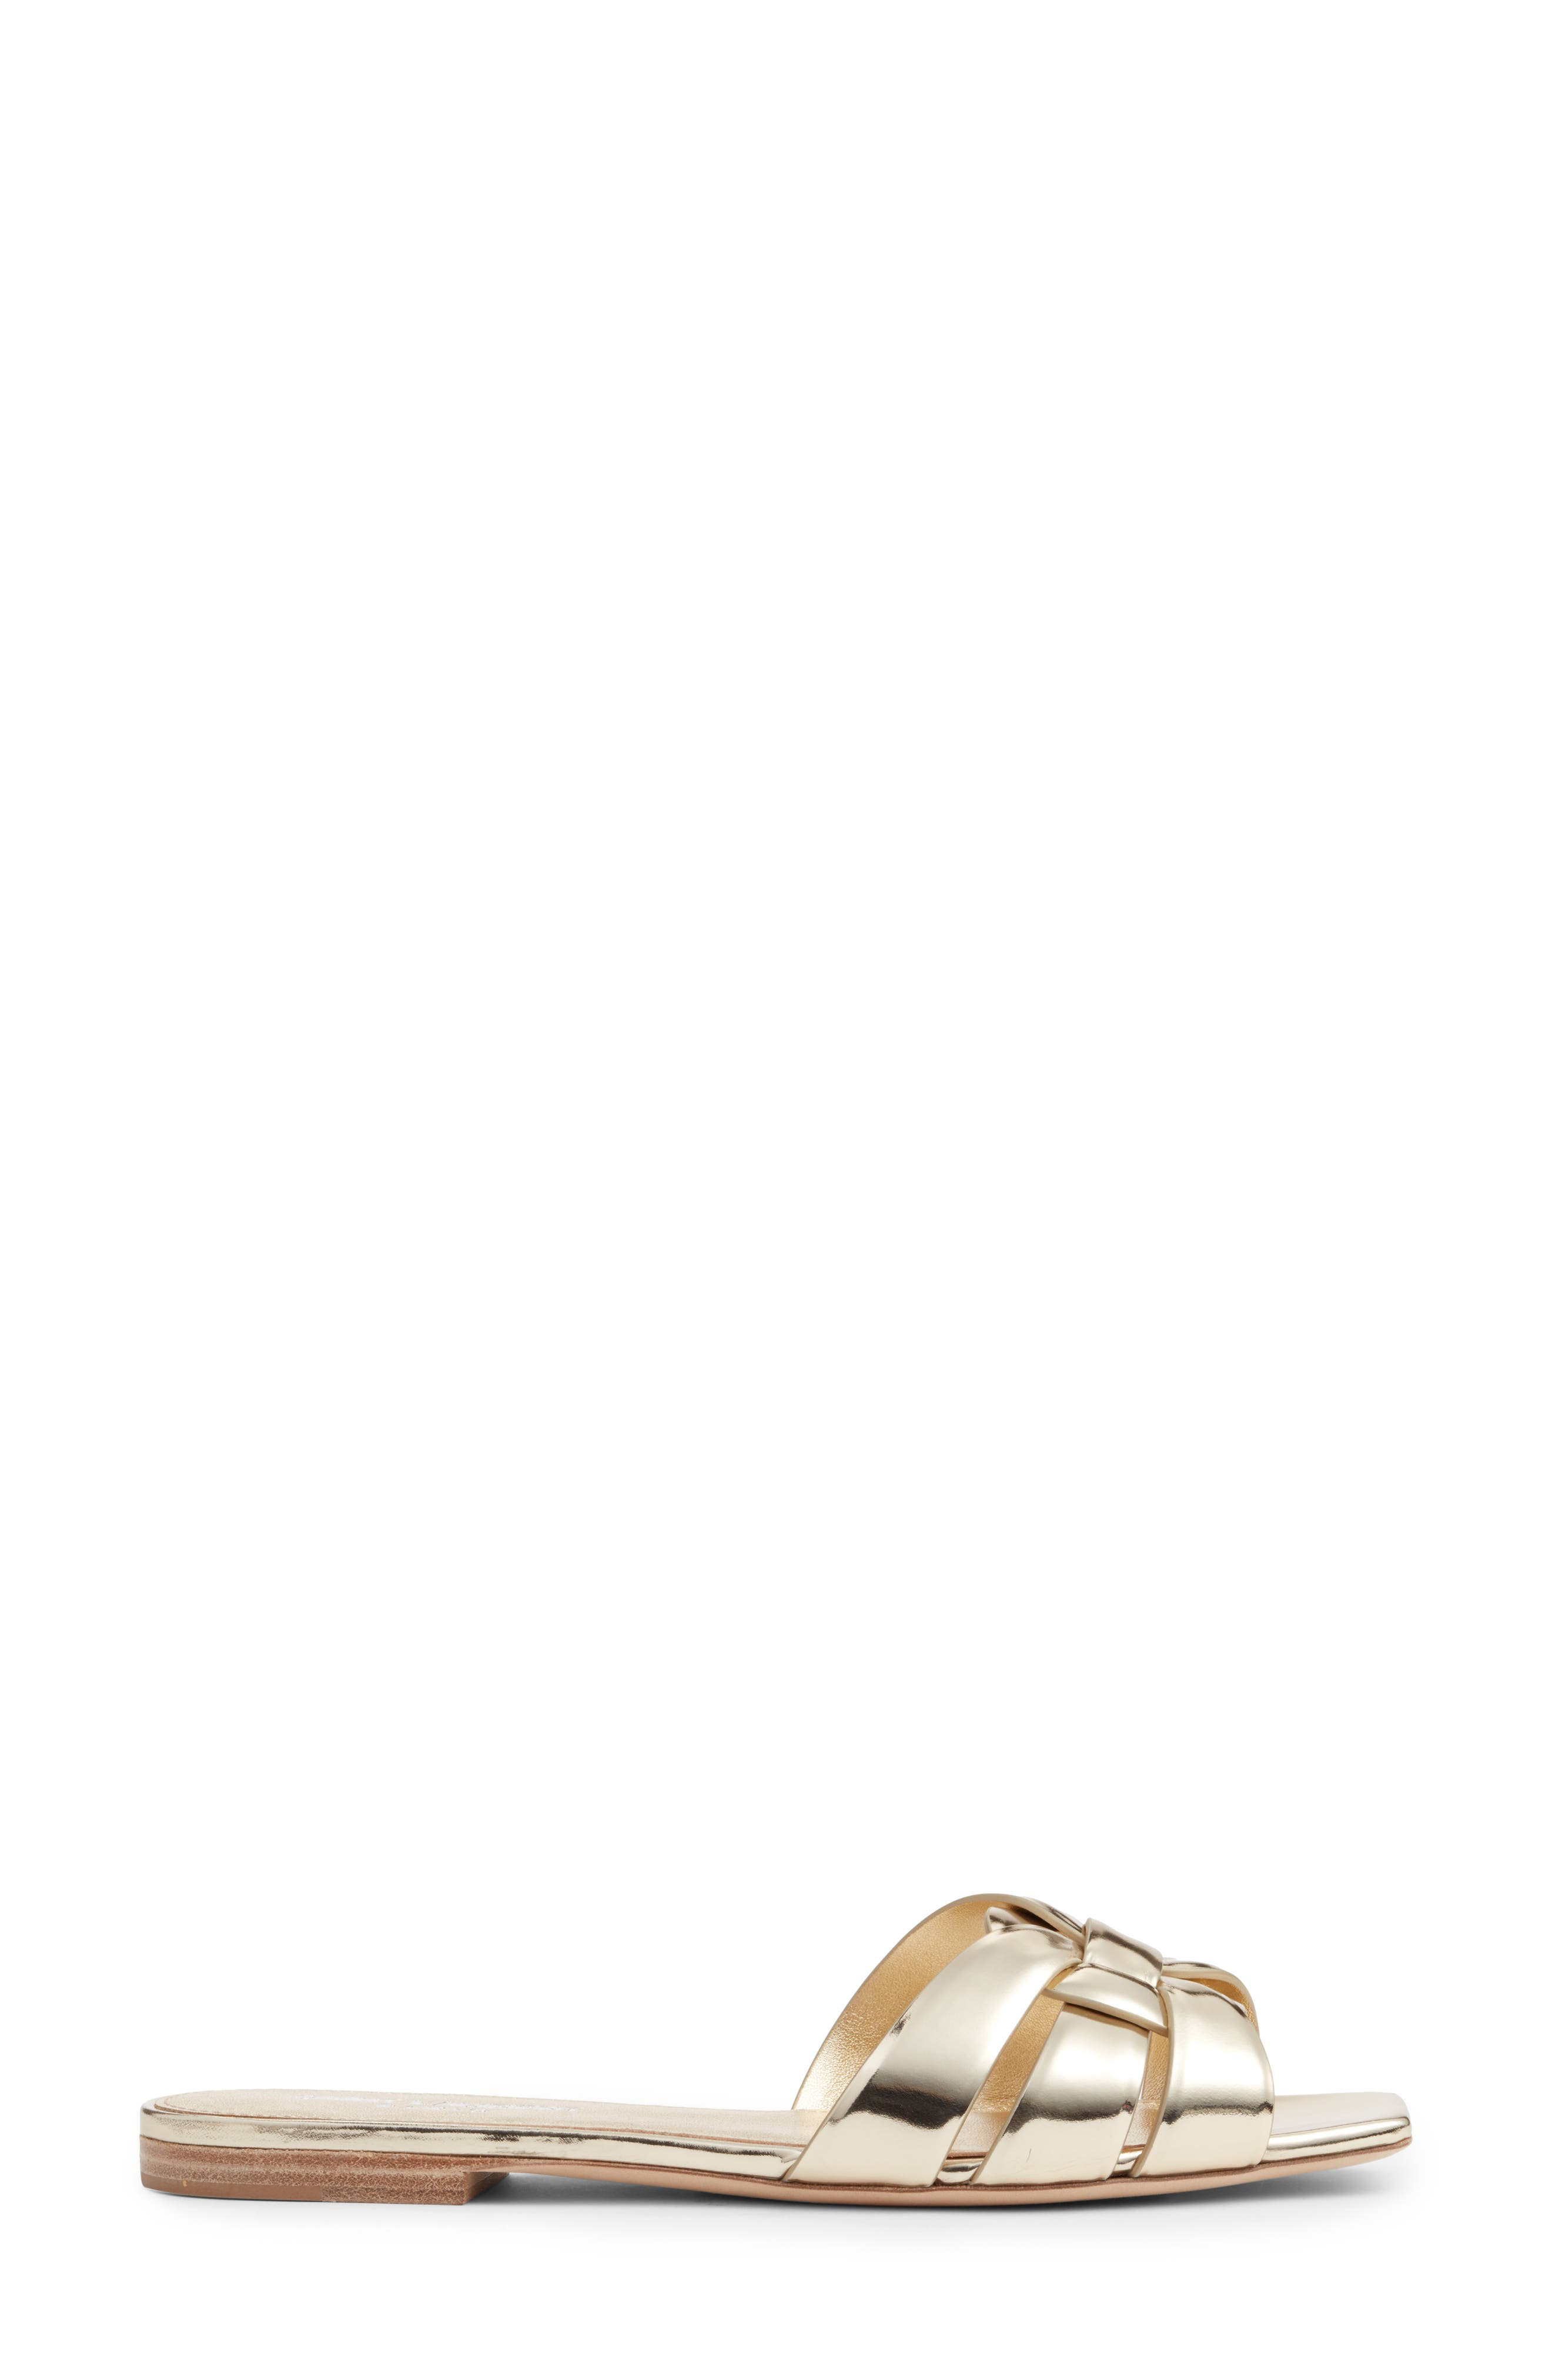 Tribute Slide Sandal,                             Alternate thumbnail 3, color,                             Metallic Gold